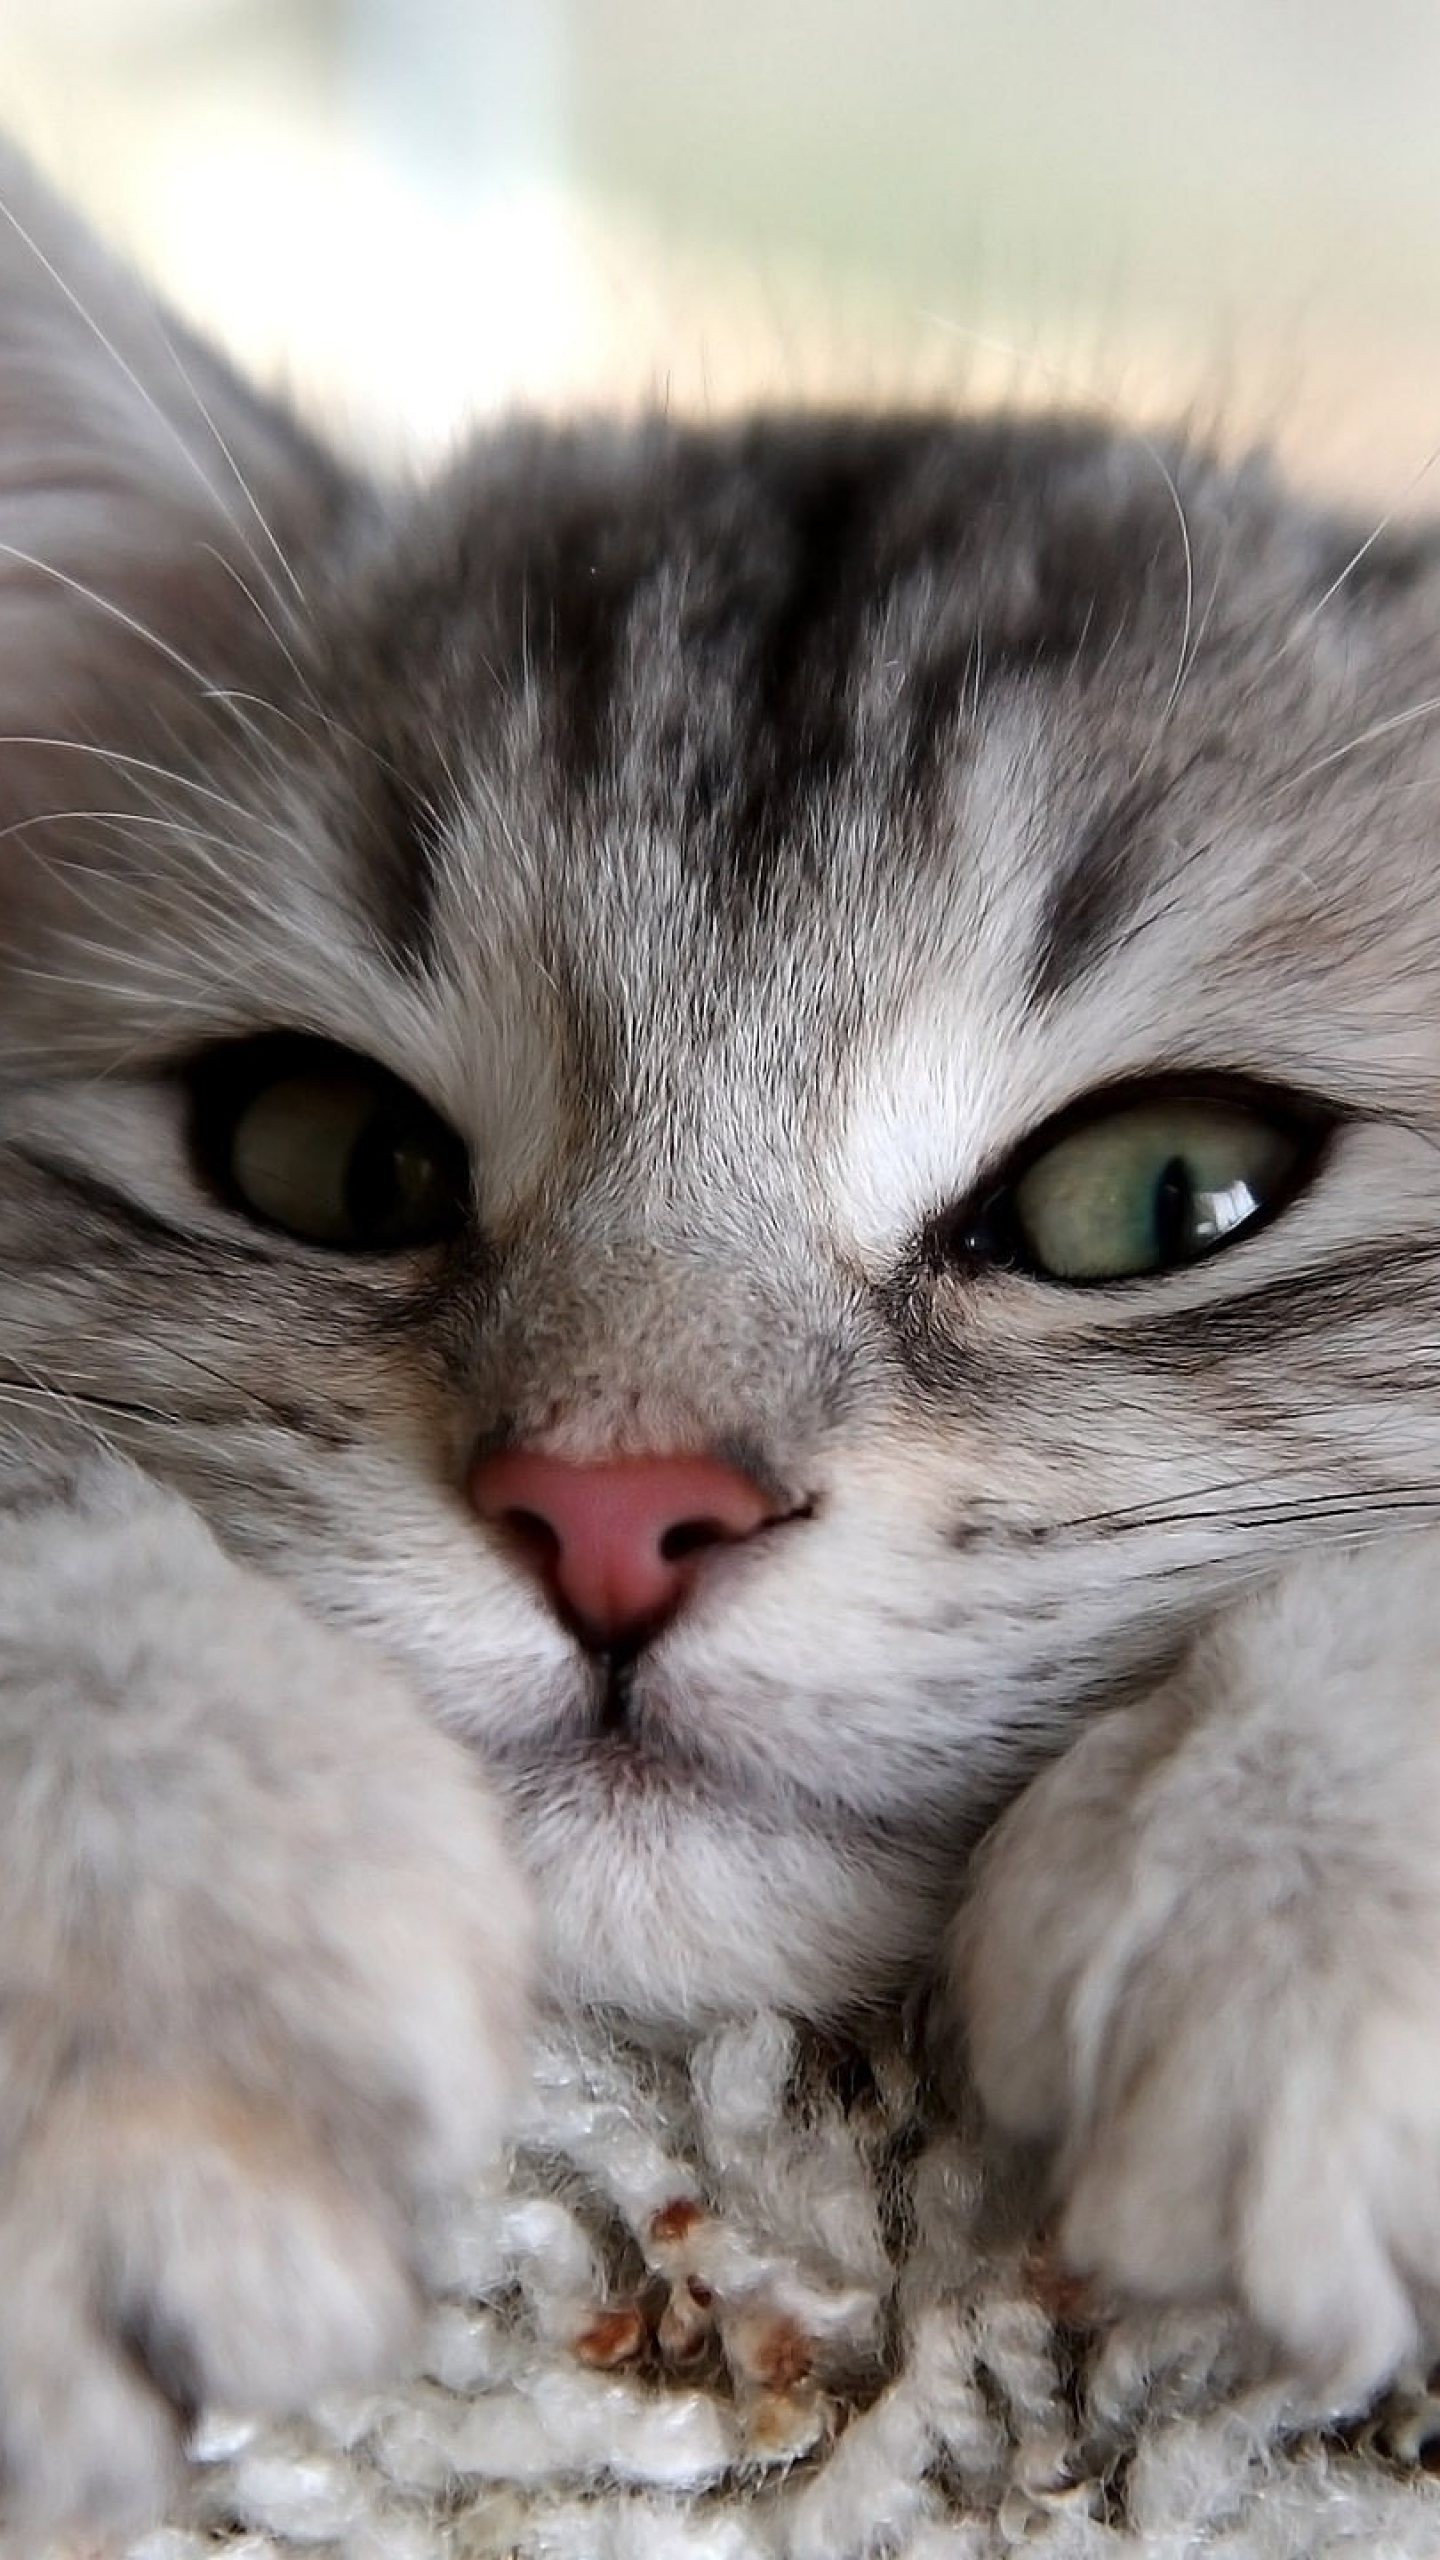 Cute Cats Hd Wallpapers For Lg G3 G4 Page 2 Wallpapers Pictures